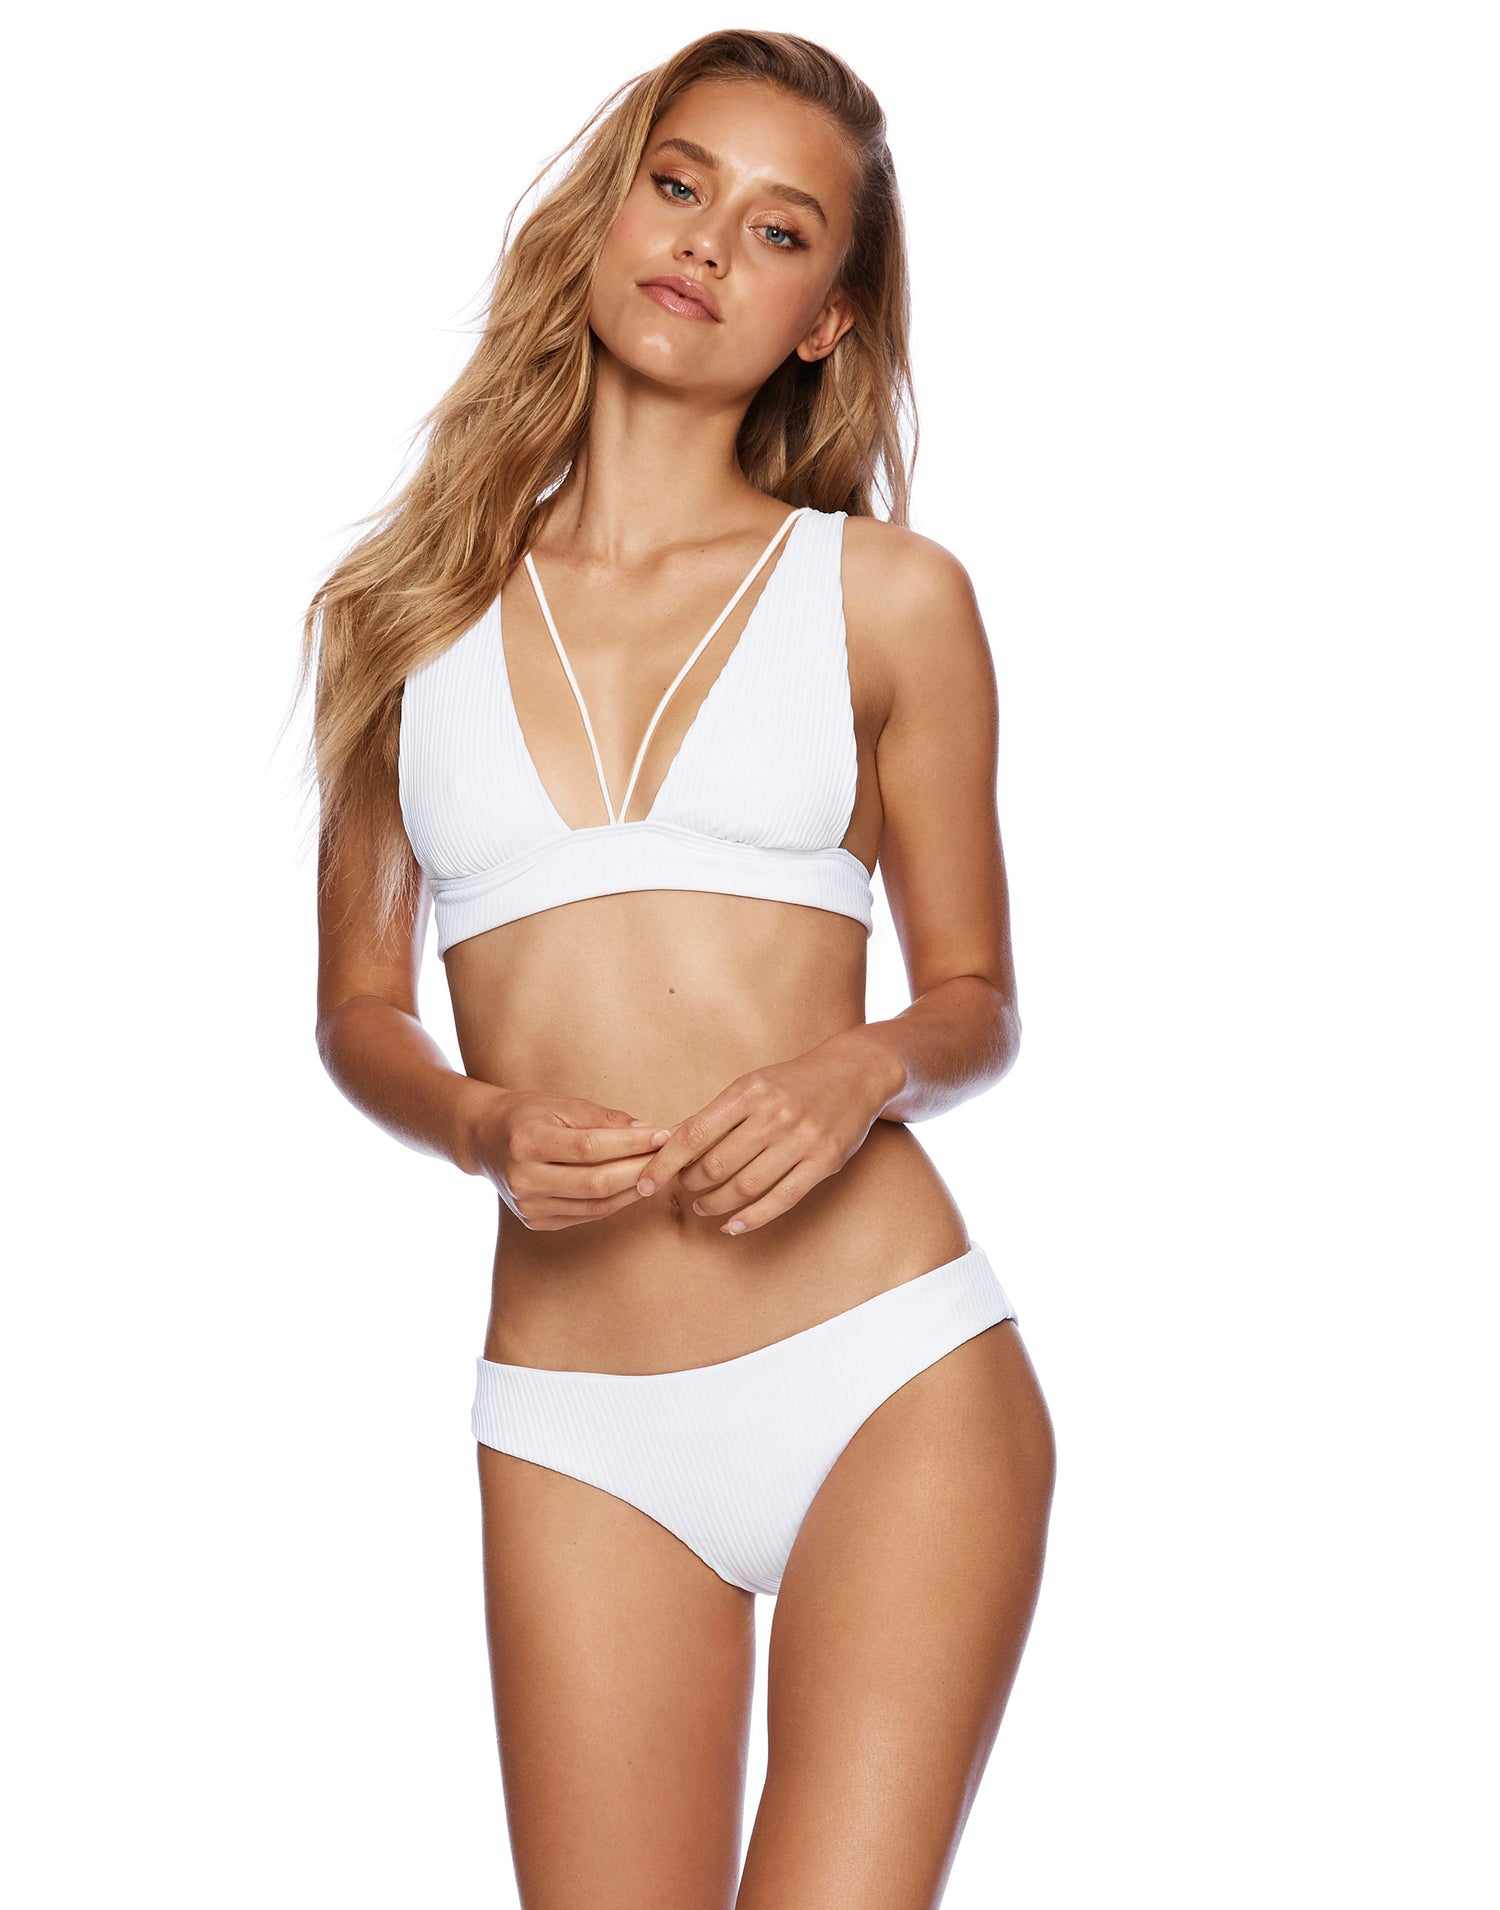 Stephanie Midi Bikini Bottom in White Rib - front view